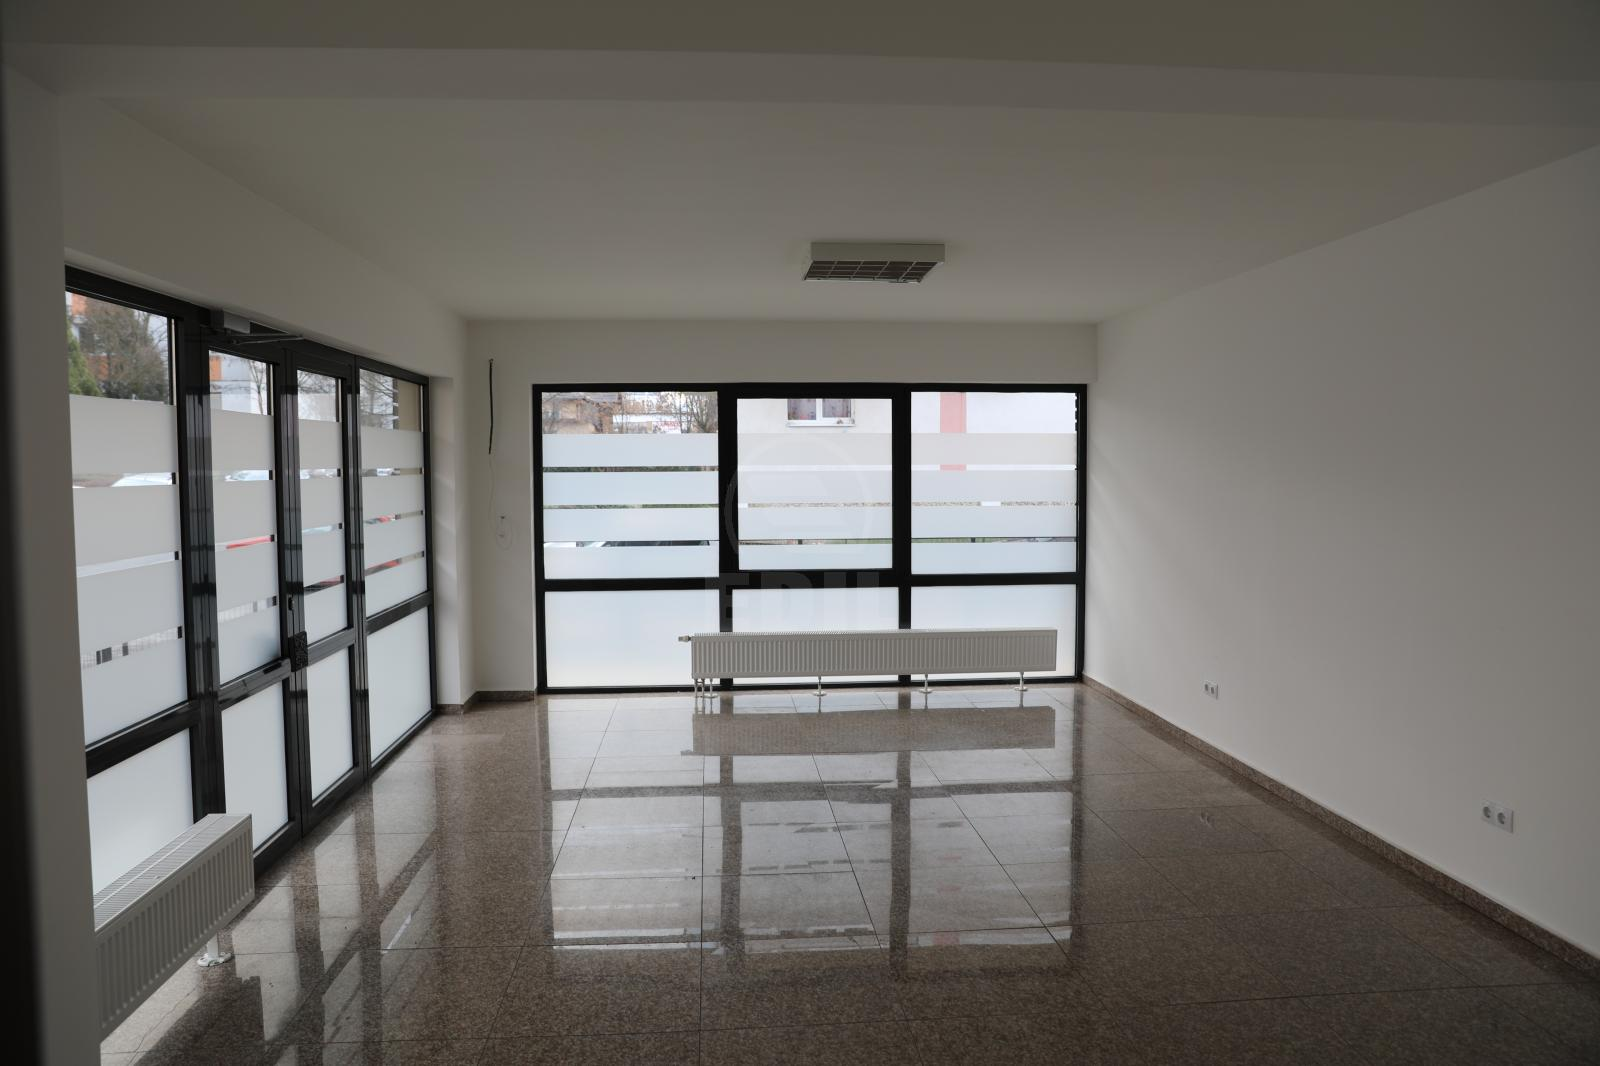 Commercial space for sale 3 rooms, SCCJ297529-12